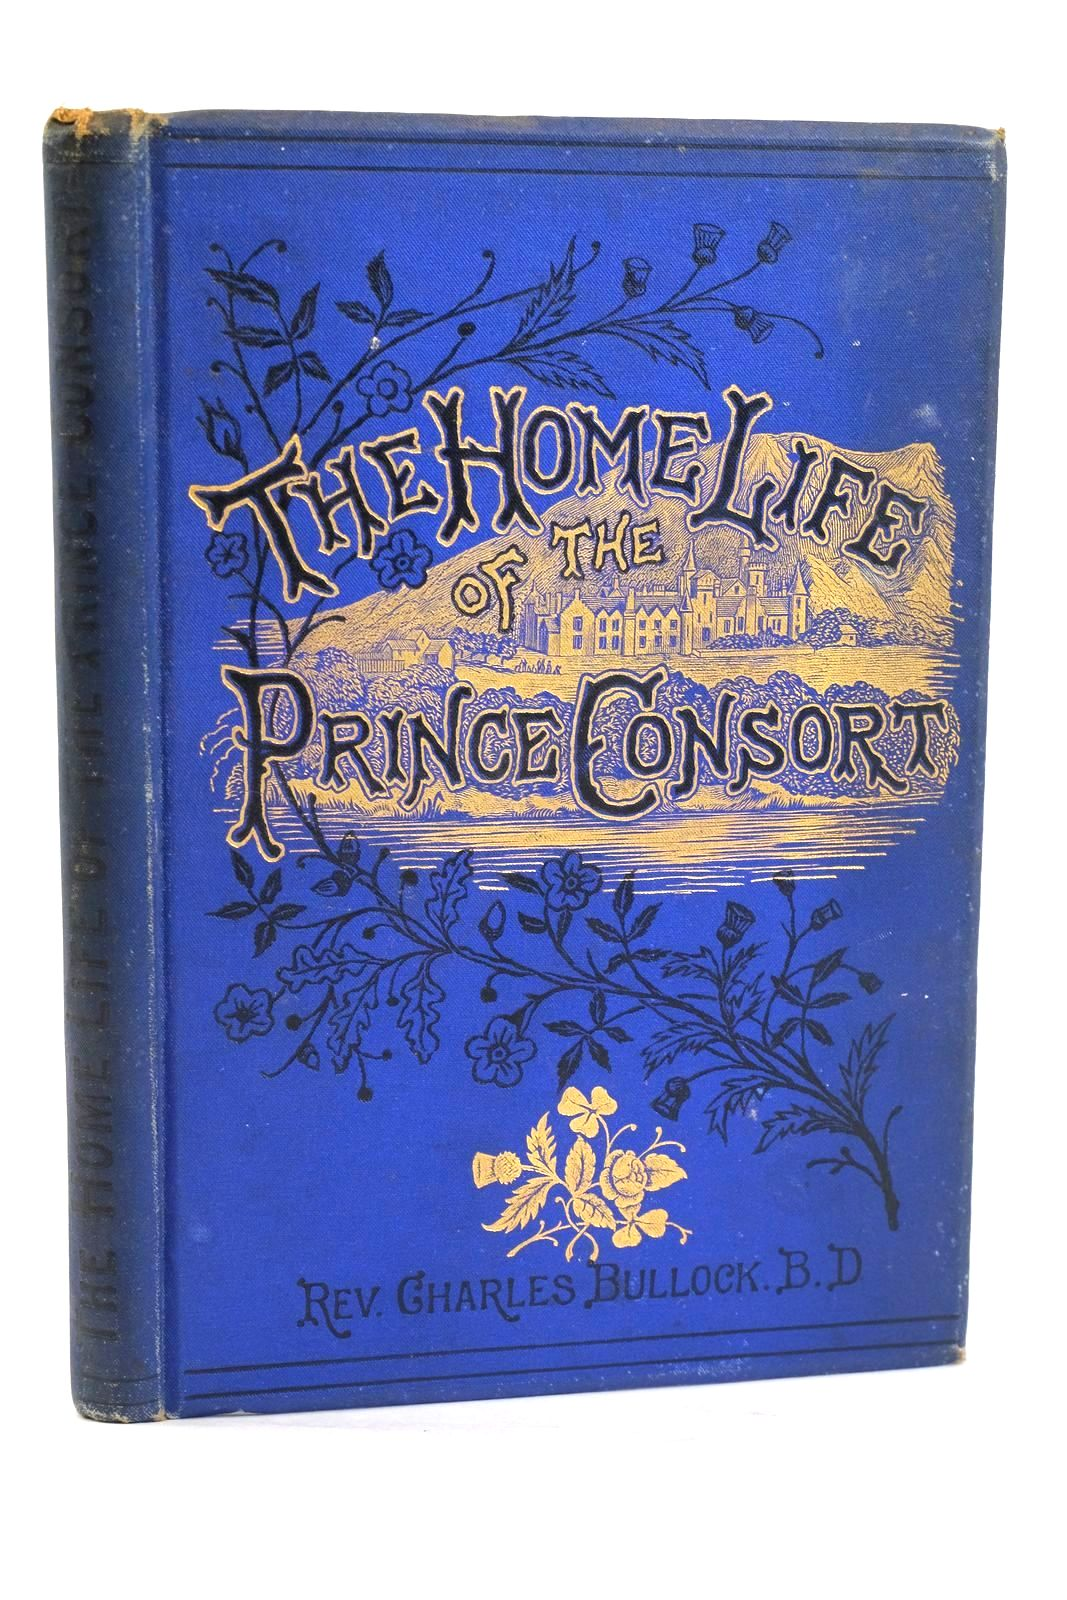 Photo of THE HOME LIFE OF THE PRINCE CONSORT written by Bullock, Charles published by Home Words Publishing Office (STOCK CODE: 1319674)  for sale by Stella & Rose's Books